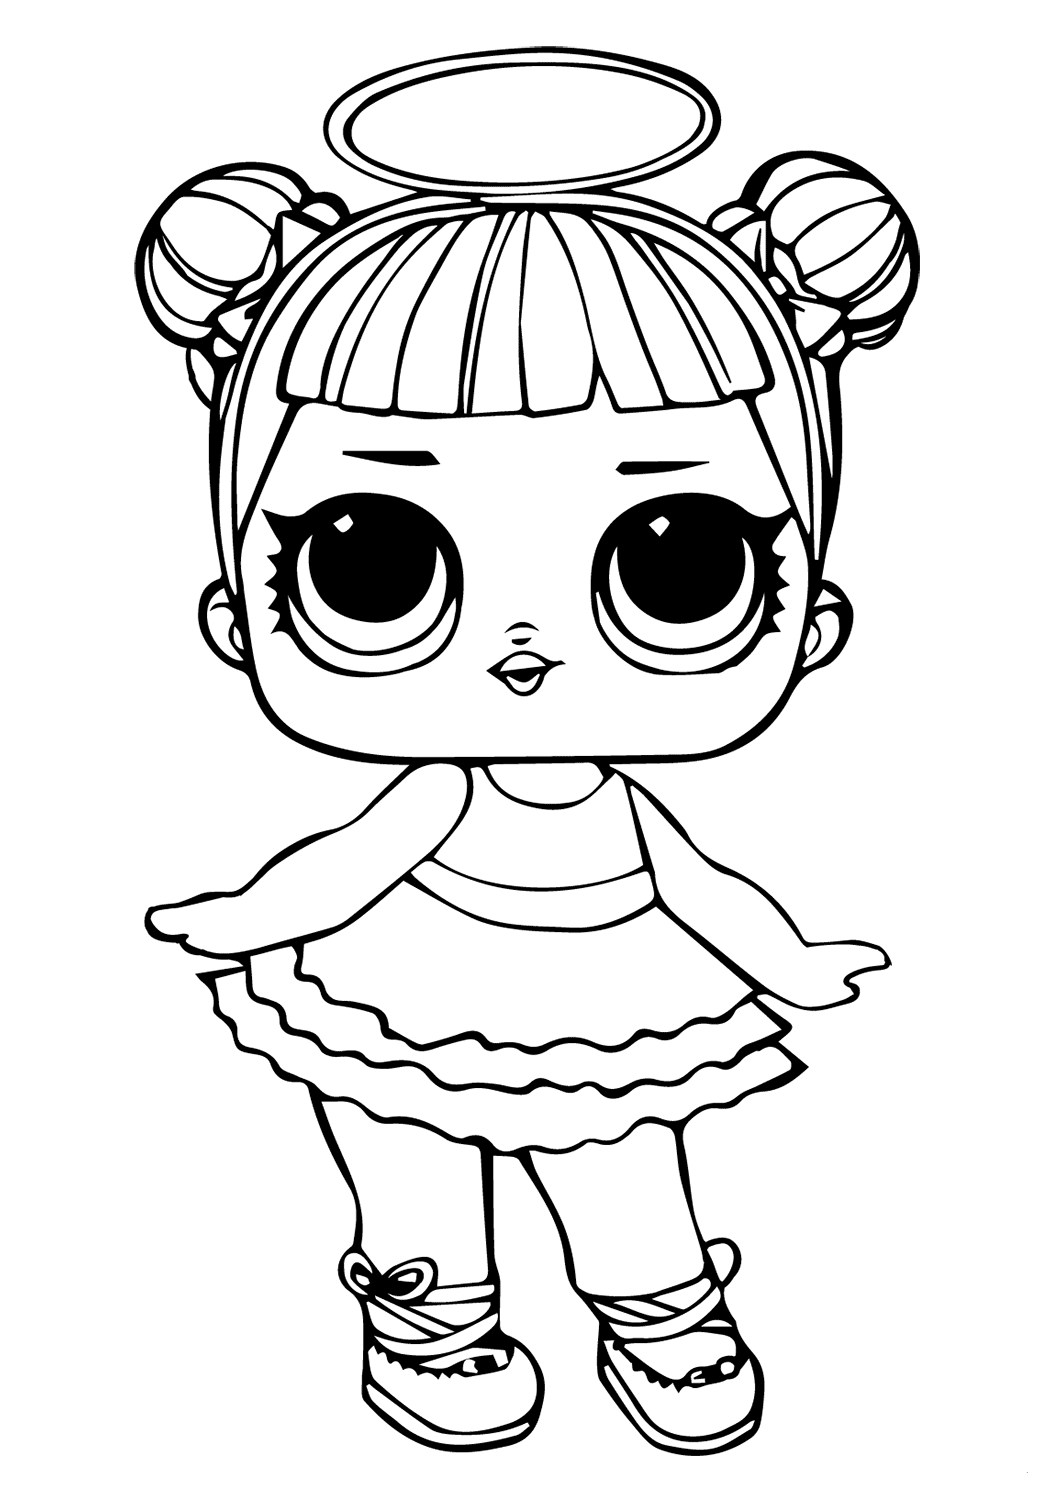 Lol Doll Coloring Pages Com Super Coloring Pages Kids Printable Coloring Pages Cartoon Coloring Pages